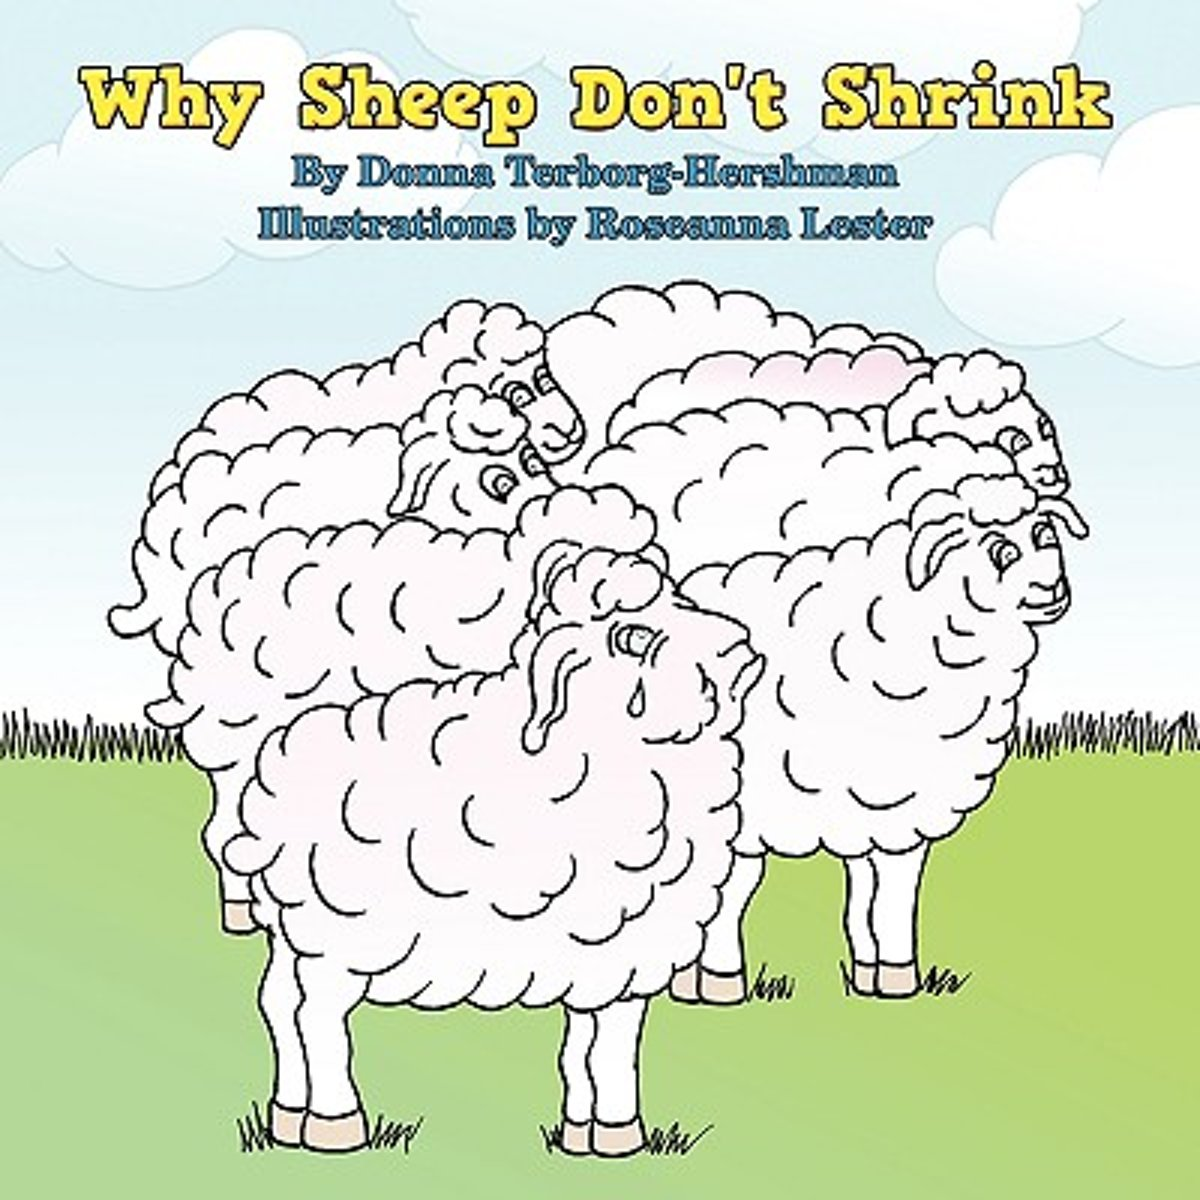 Why Sheep Don't Shrink